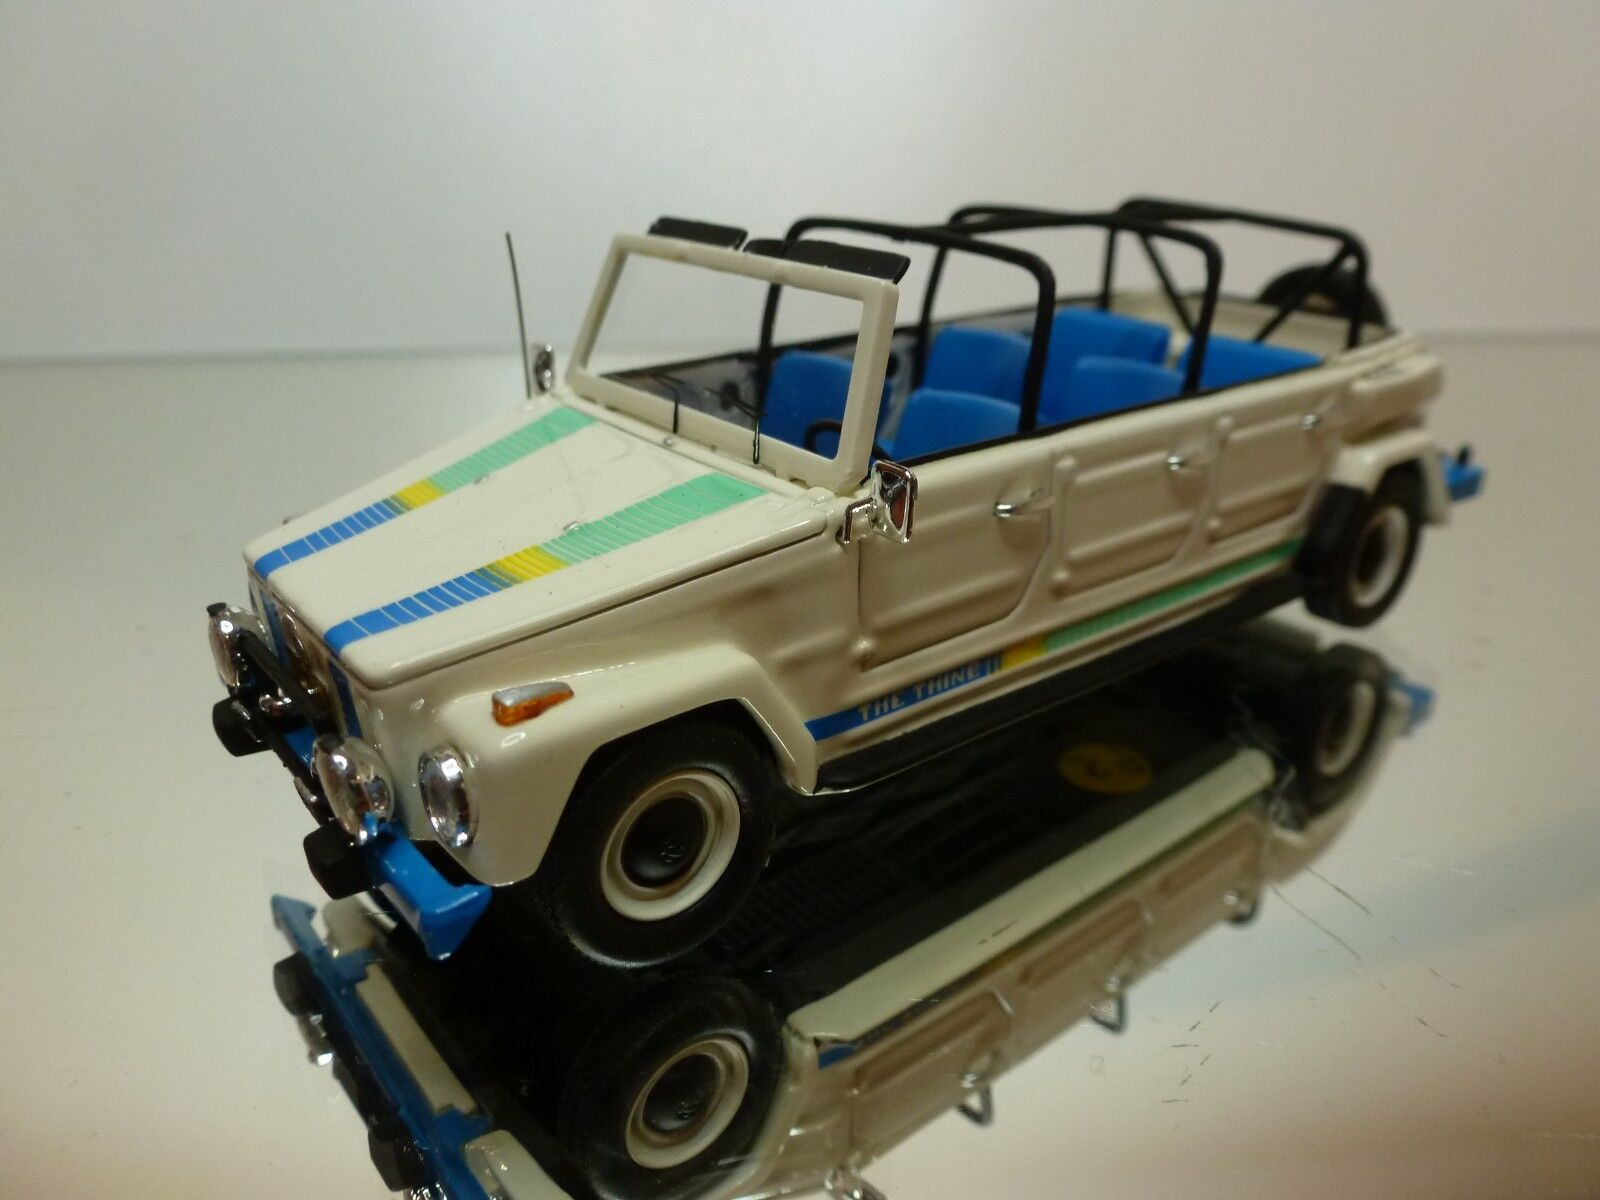 MATRIX VW VOLKSWAGEN LIMOUSINE THE THING 1979 - WHITE 1 43 - EXCELLENT - 29